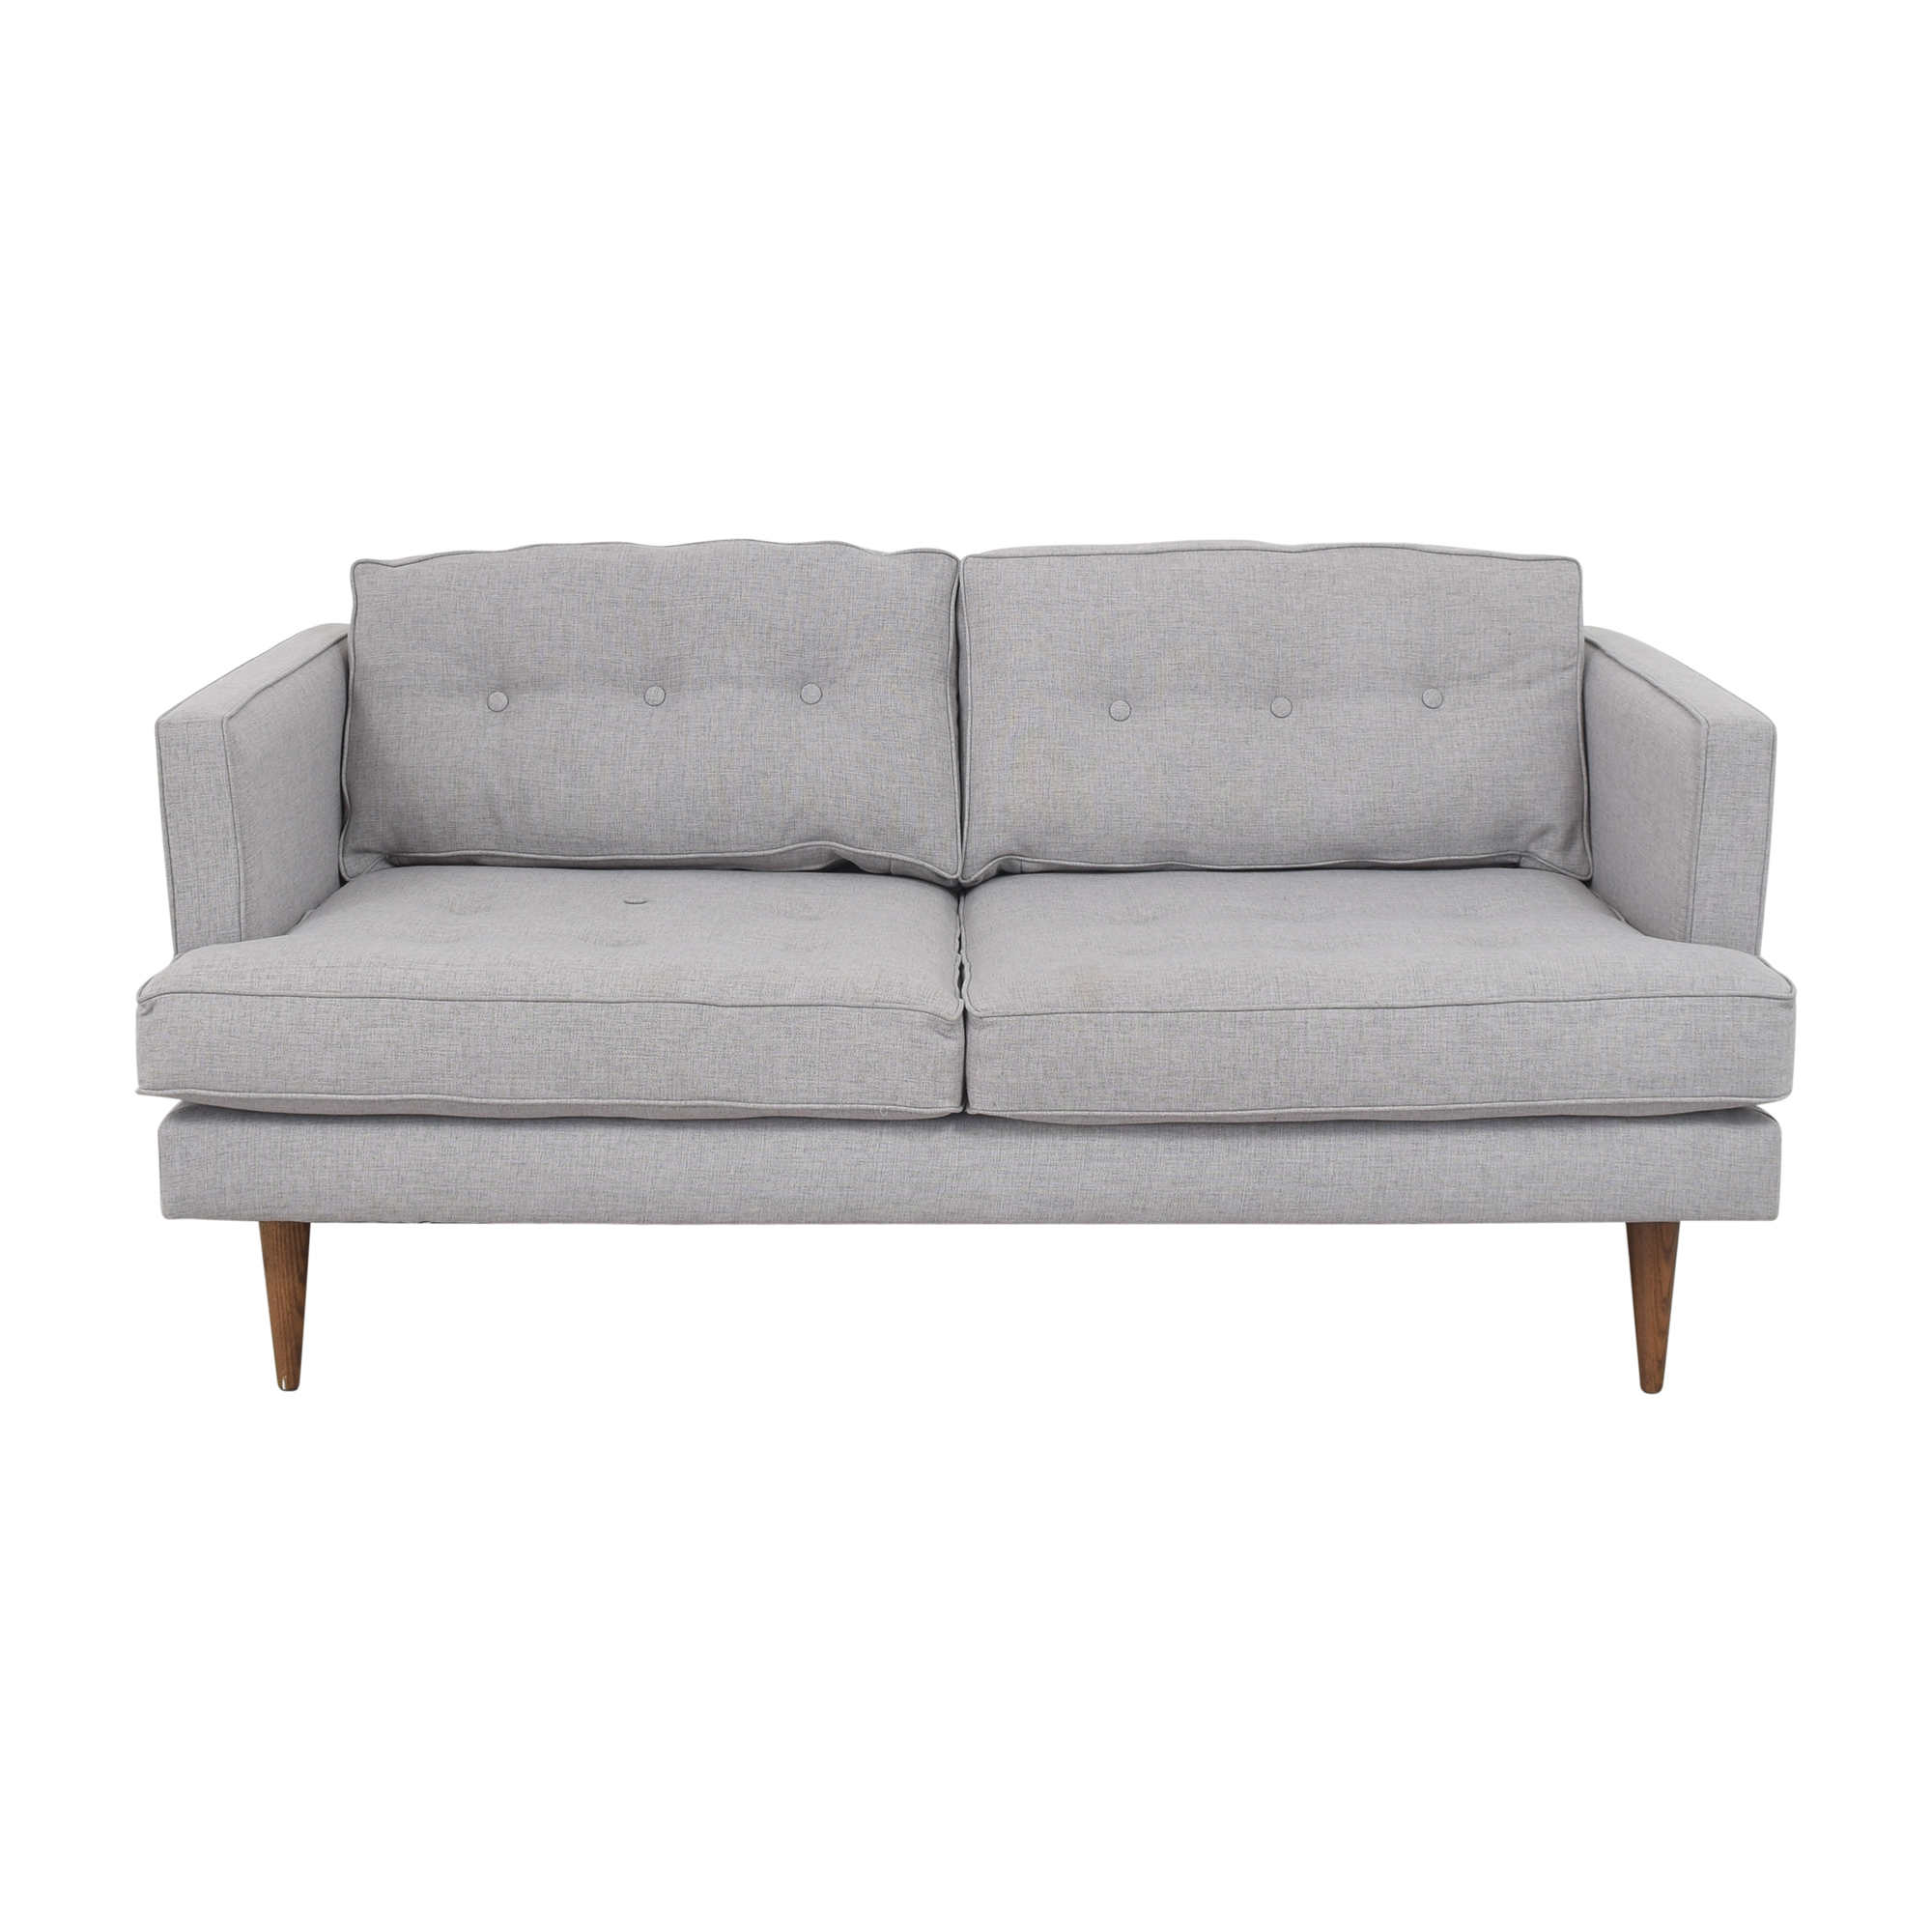 West Elm Peggy Mid Century Loveseat sale